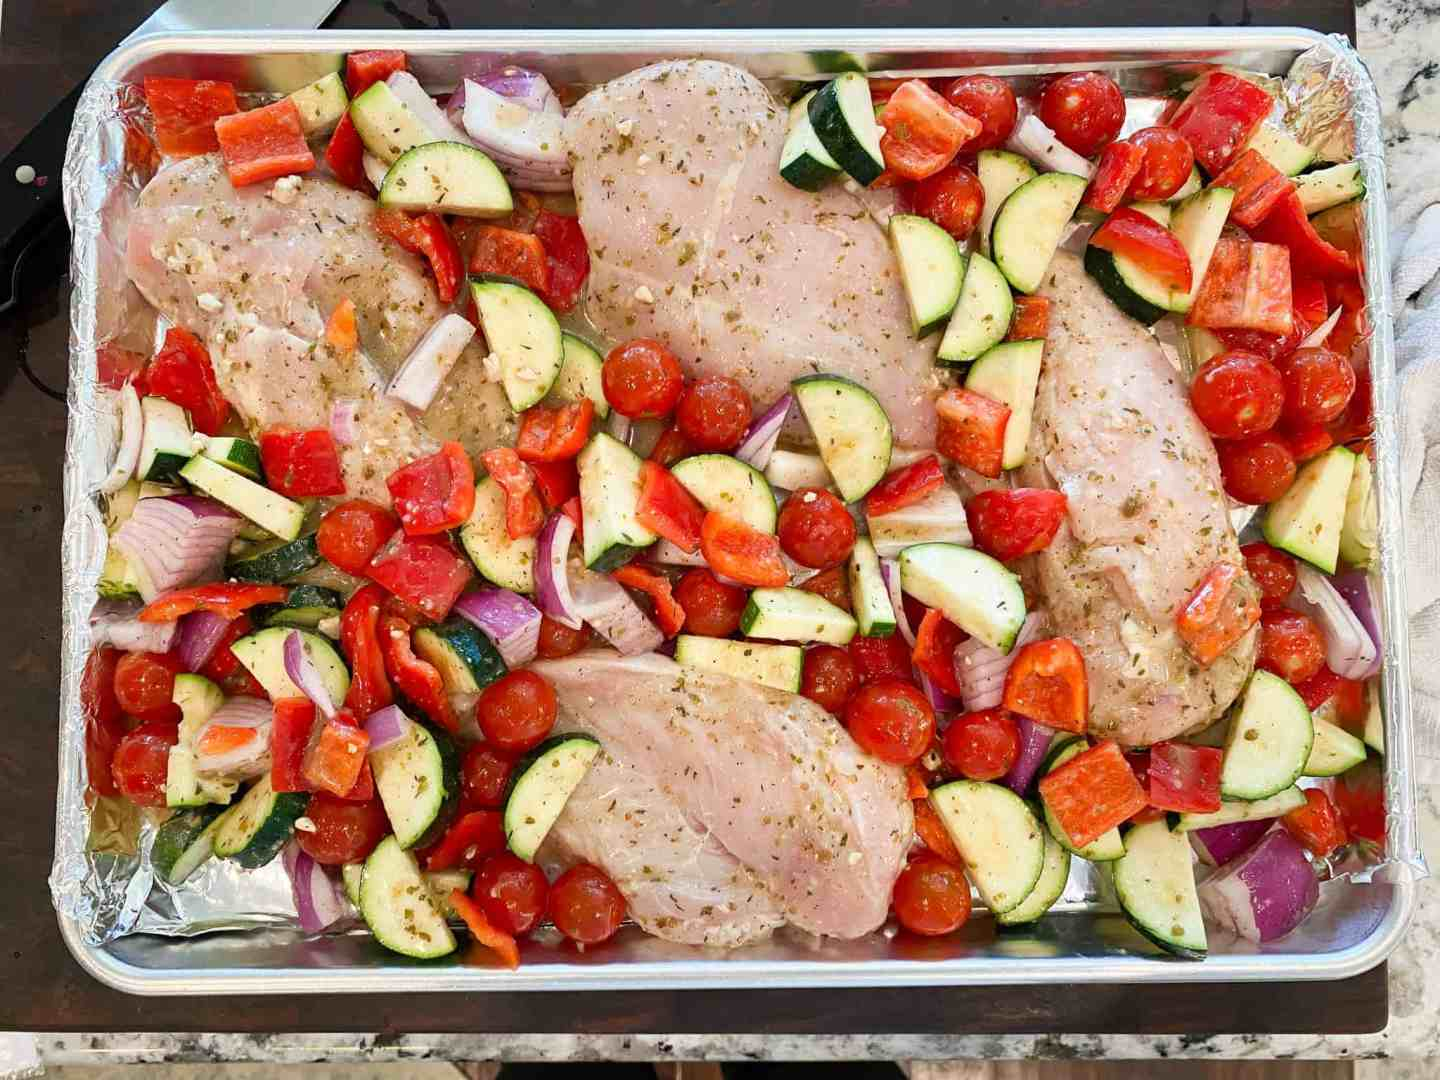 bake-chicken-breast-and-vegetables-at-375-for-about-30-minutes